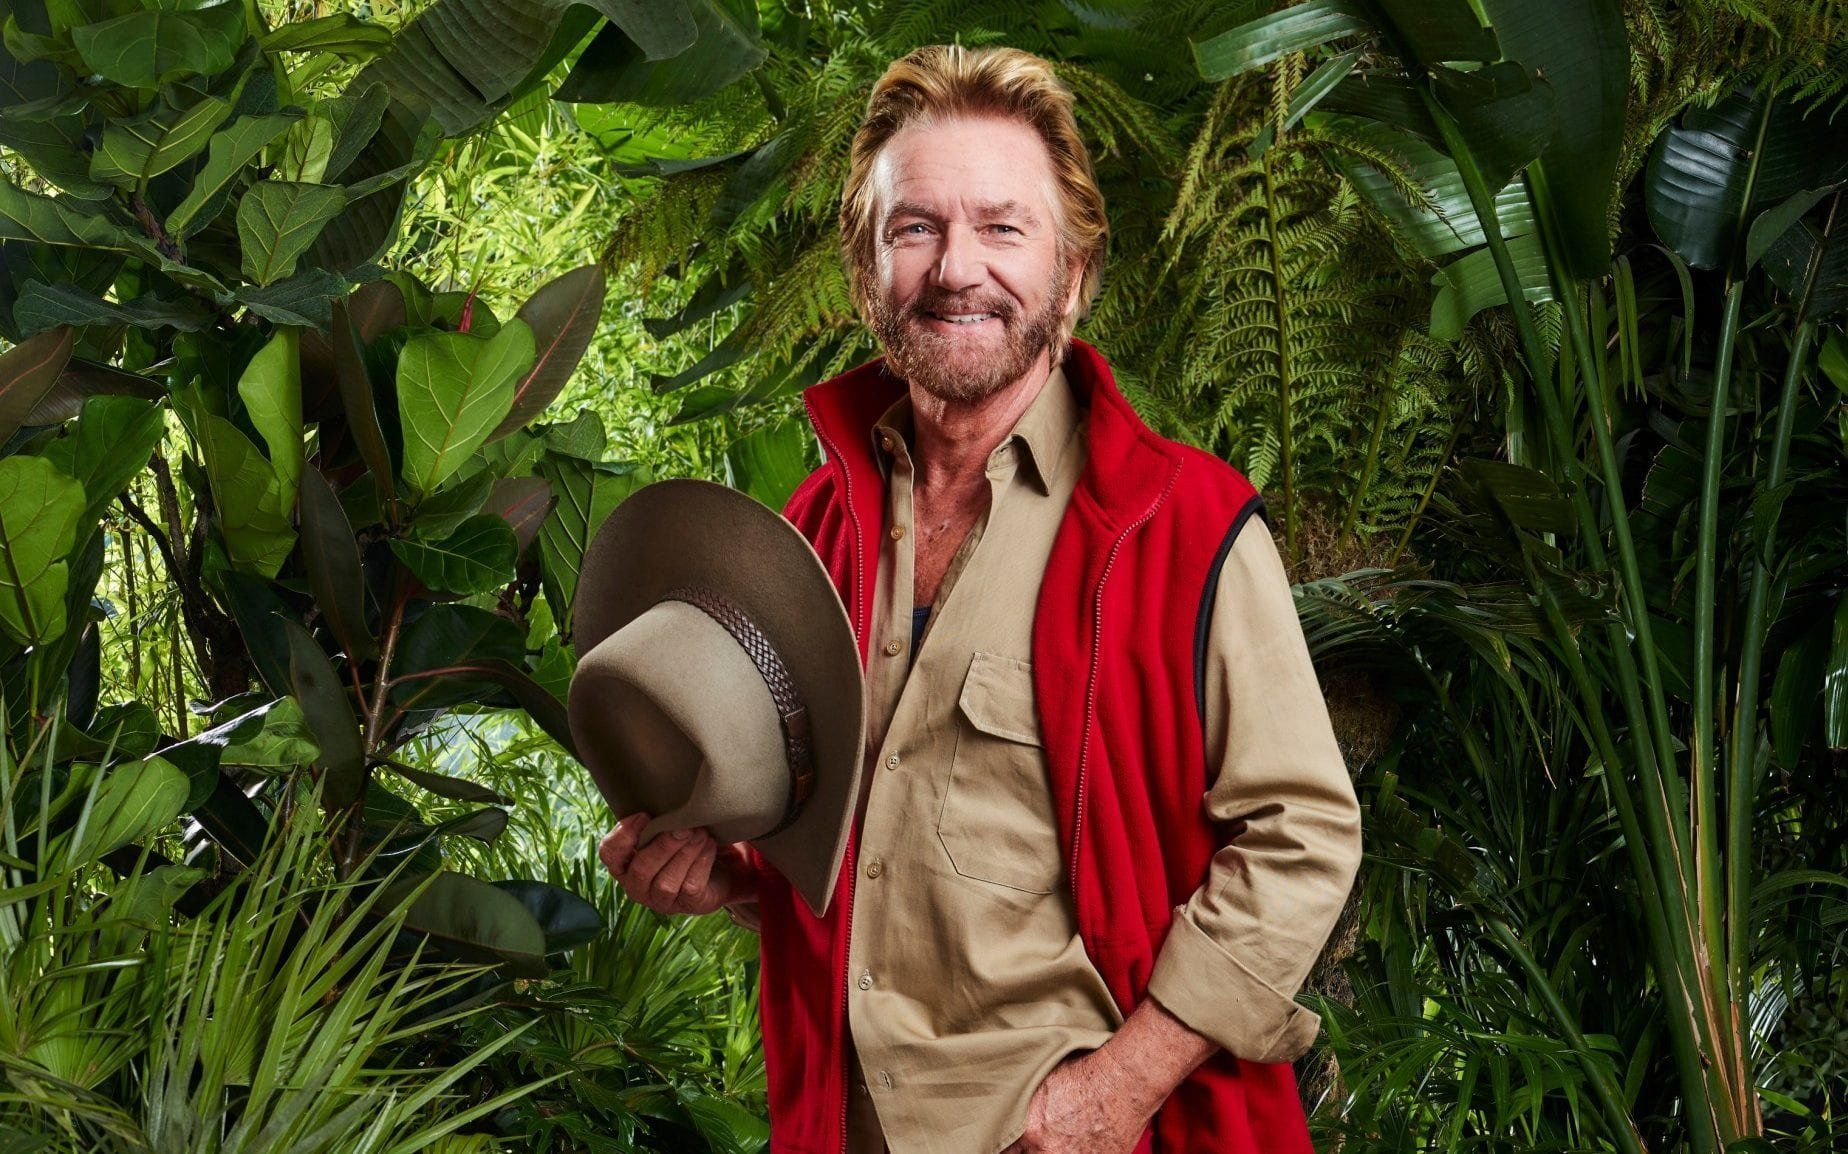 Noel Edmonds will be a late arrival in the